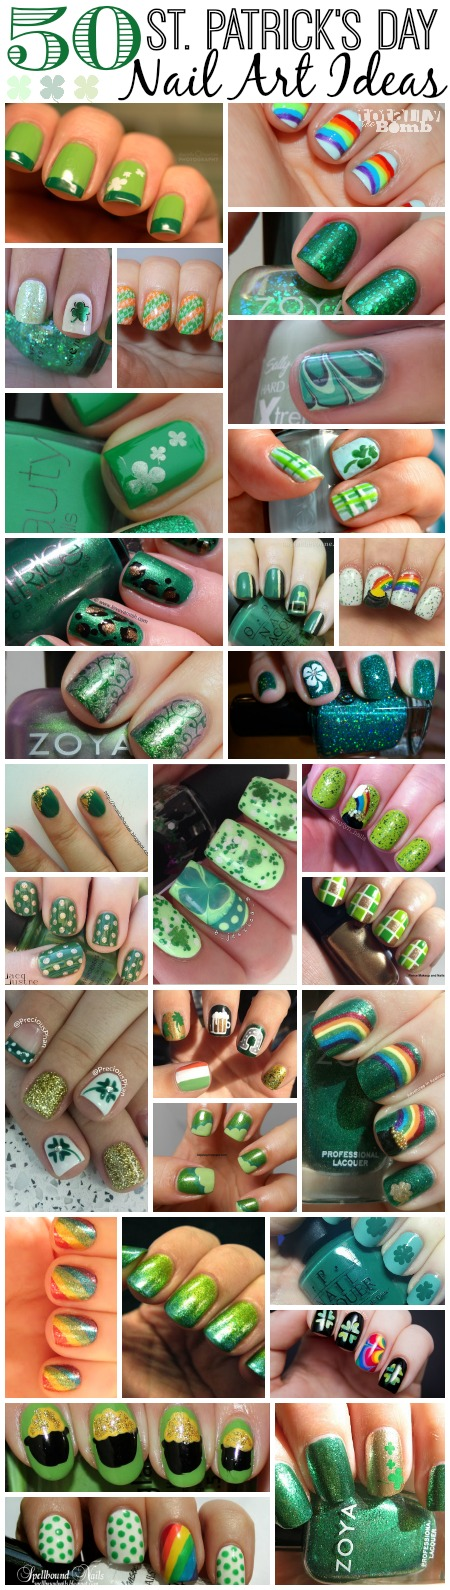 50-St-Patricks-Day-Nail-Art-Ideas1